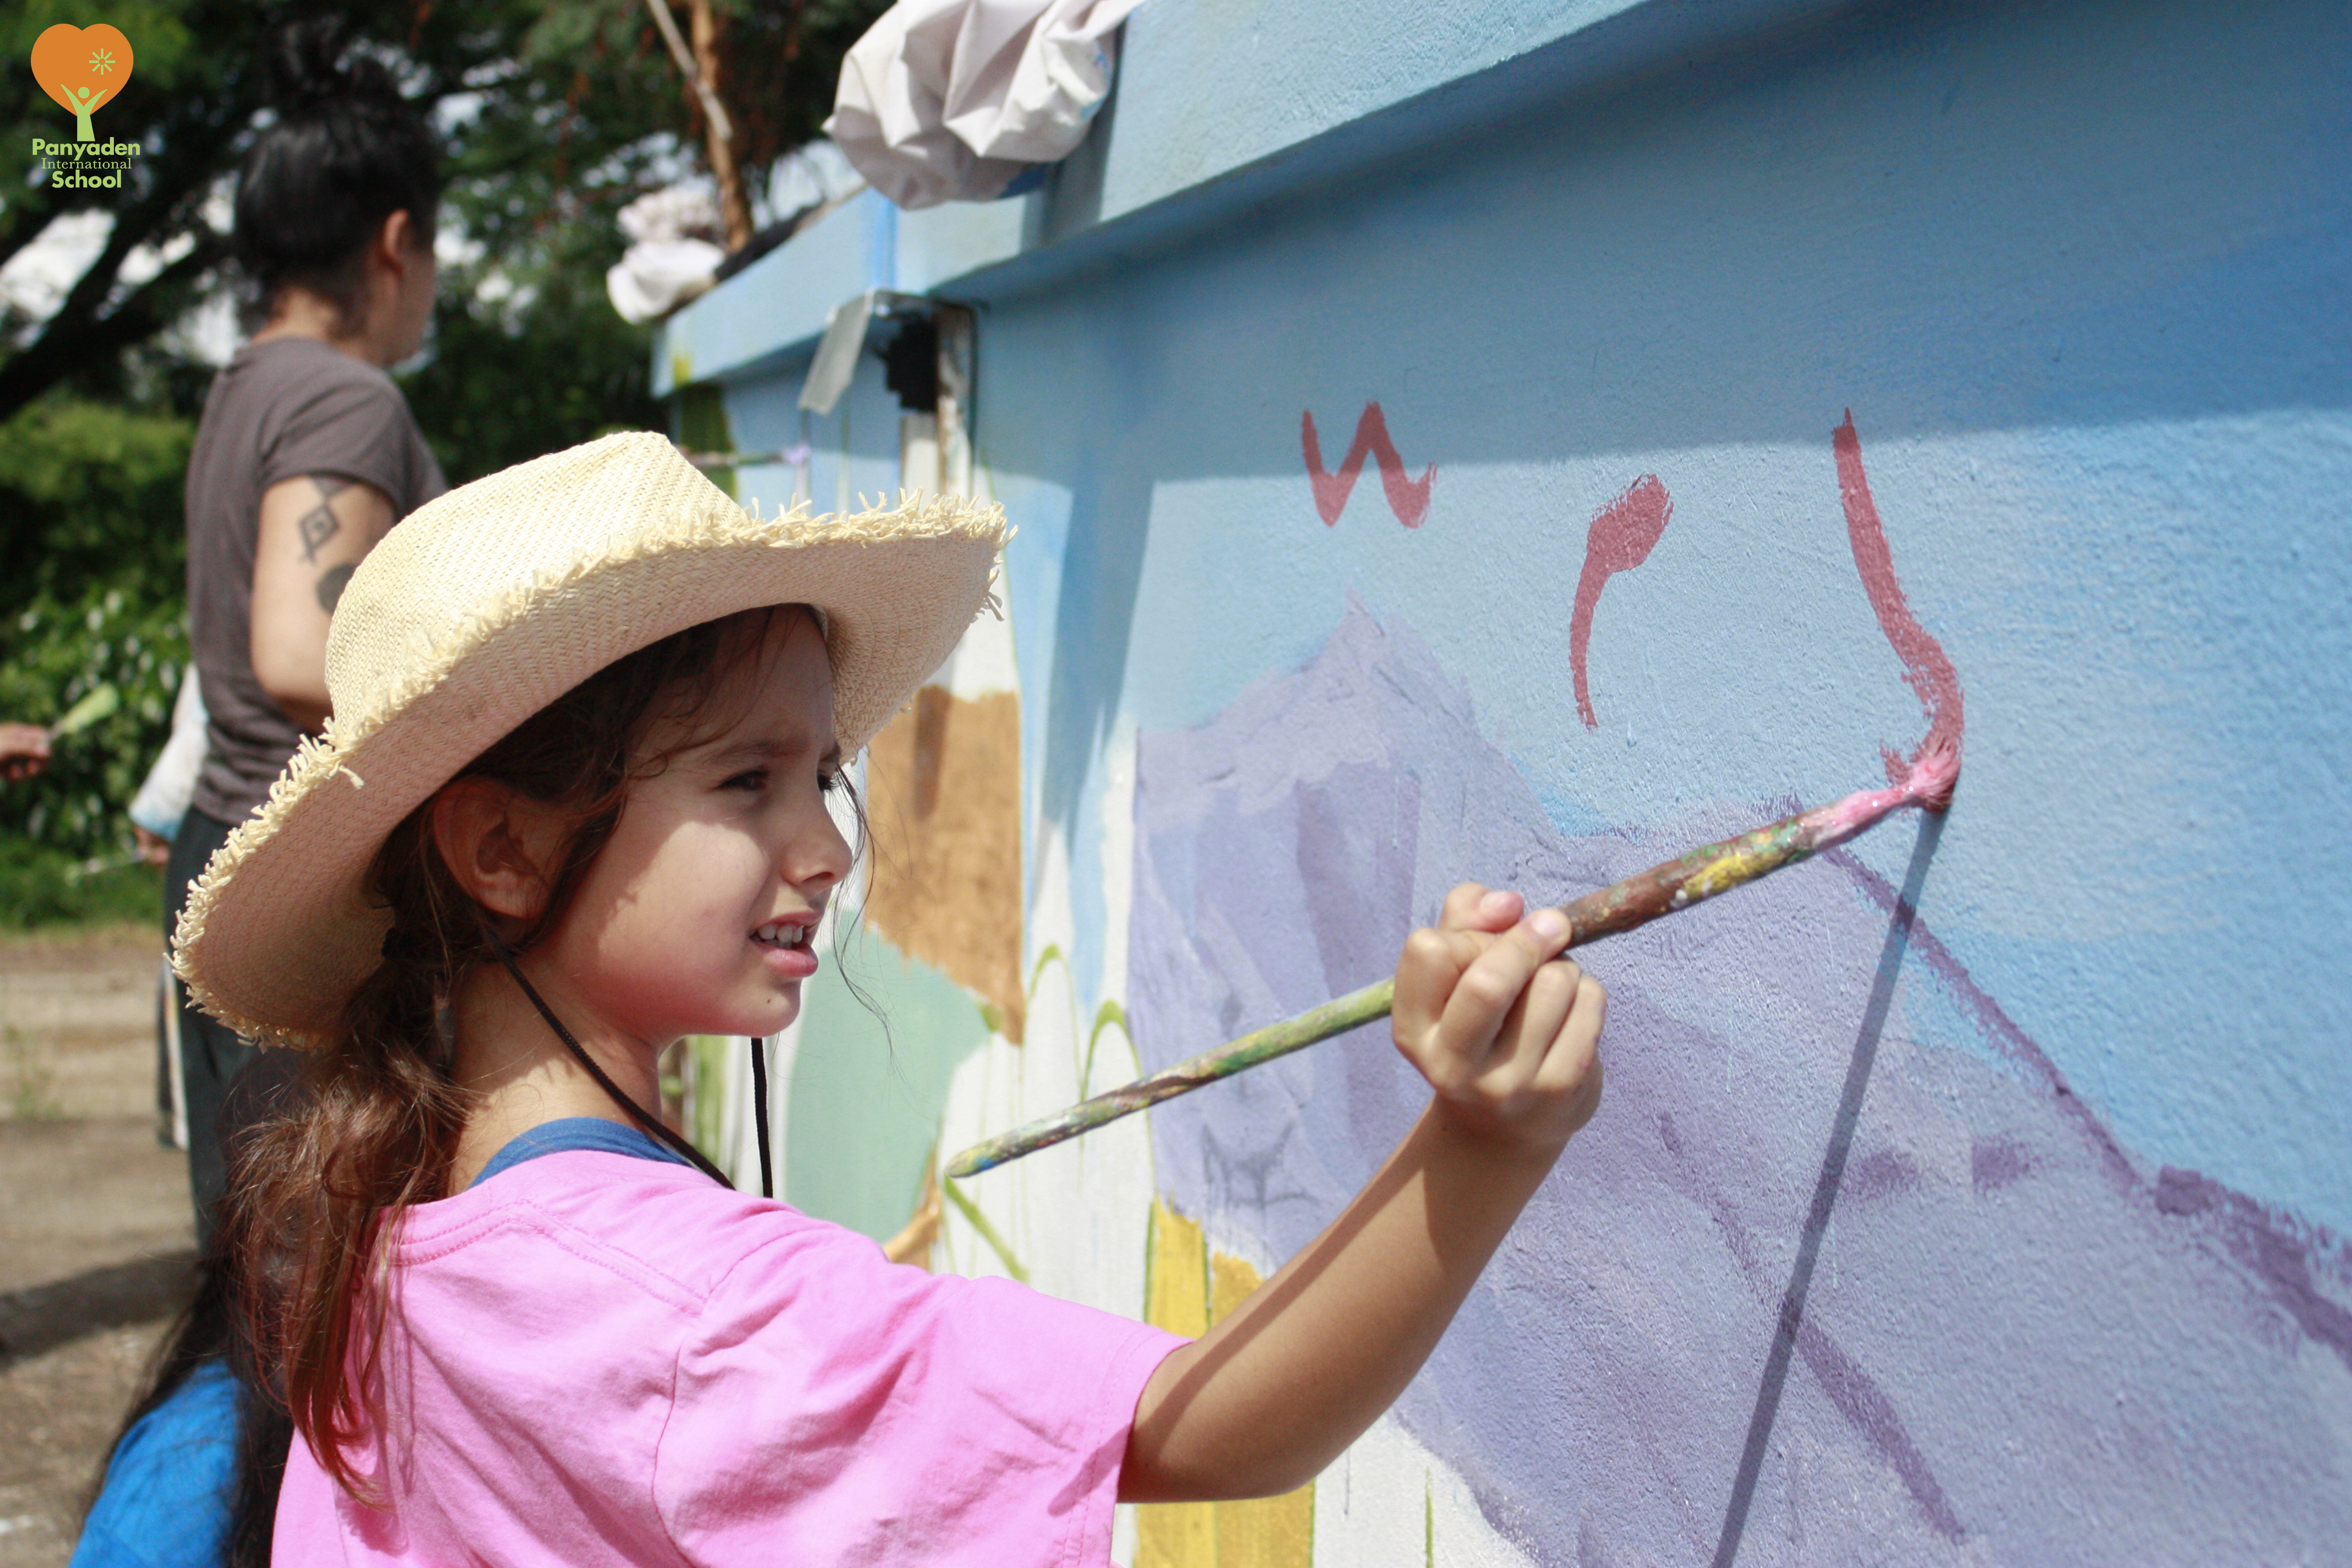 Panyaden Year 3 (Y3) student contrates on painting mural